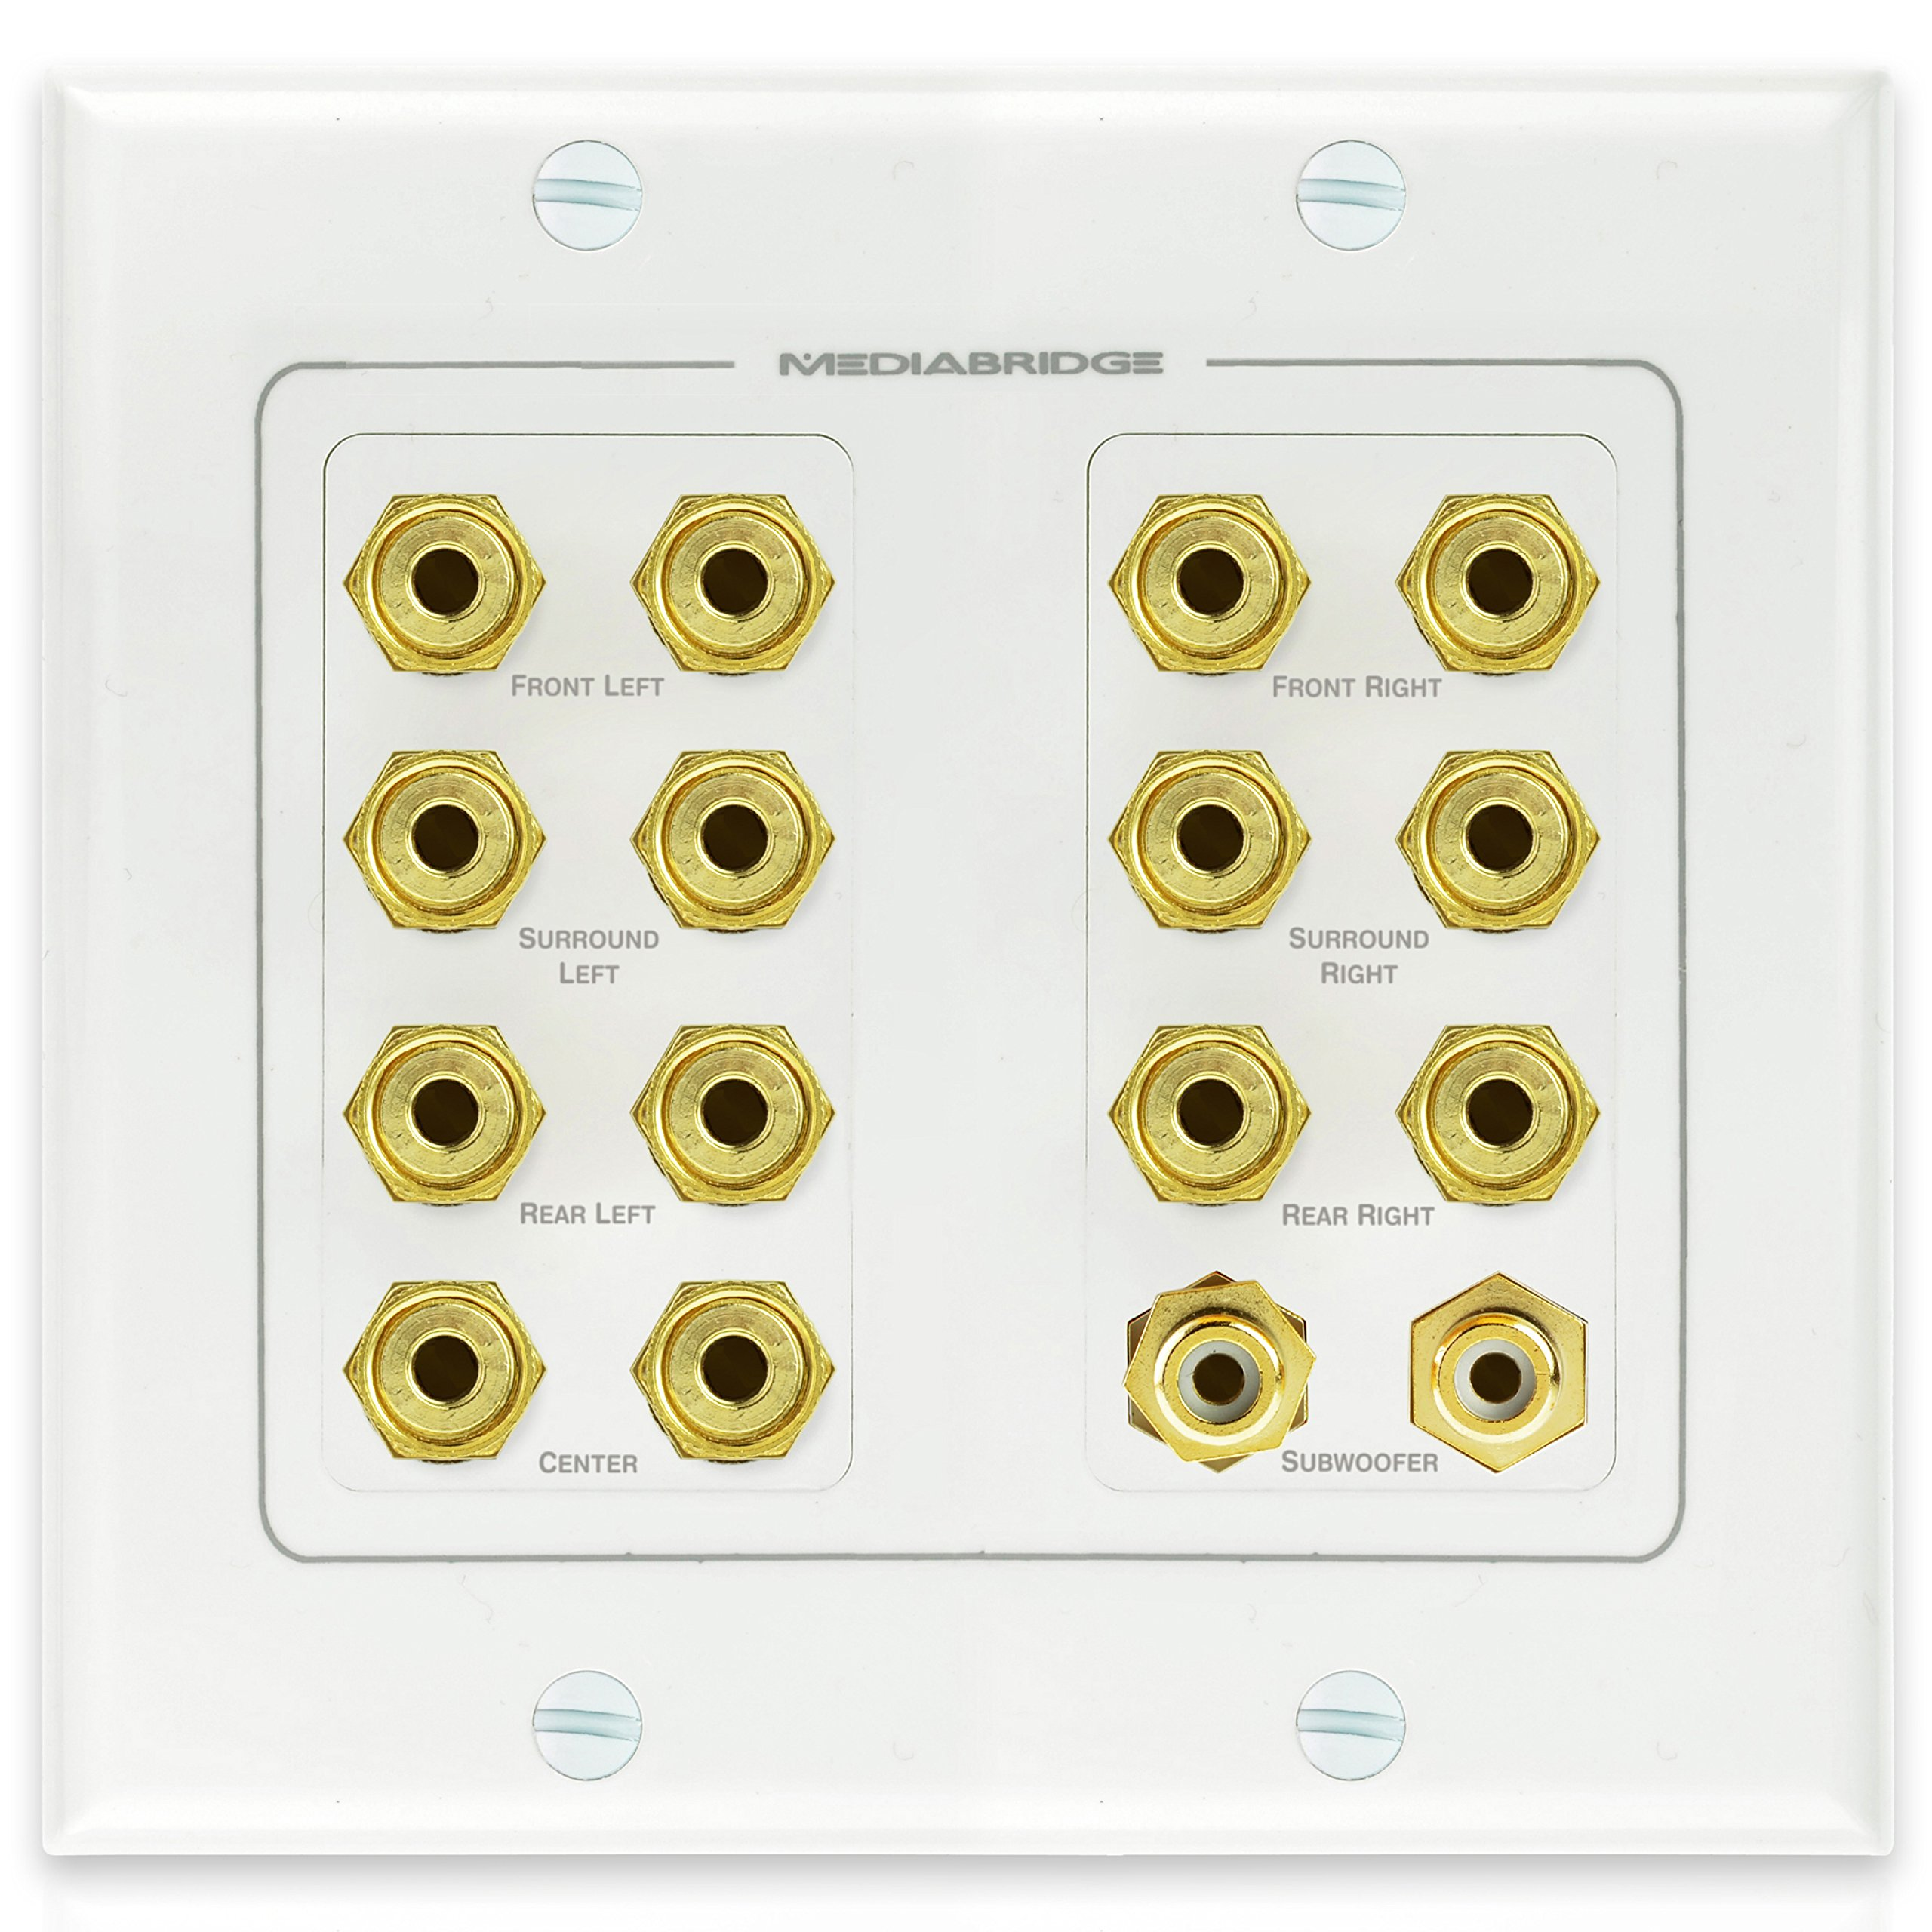 Mediabridge Speaker Wall Plate w/ Binding Posts (7 Pair) & RCA (2 Ports) - LIMITED TIME OFFER: FREE Mounting Bracket (2-Gang) - 2-Piece Inset Wall Plate for 7.1 / 7.2 Surround Sound (Part# WP2-B7/S2 )